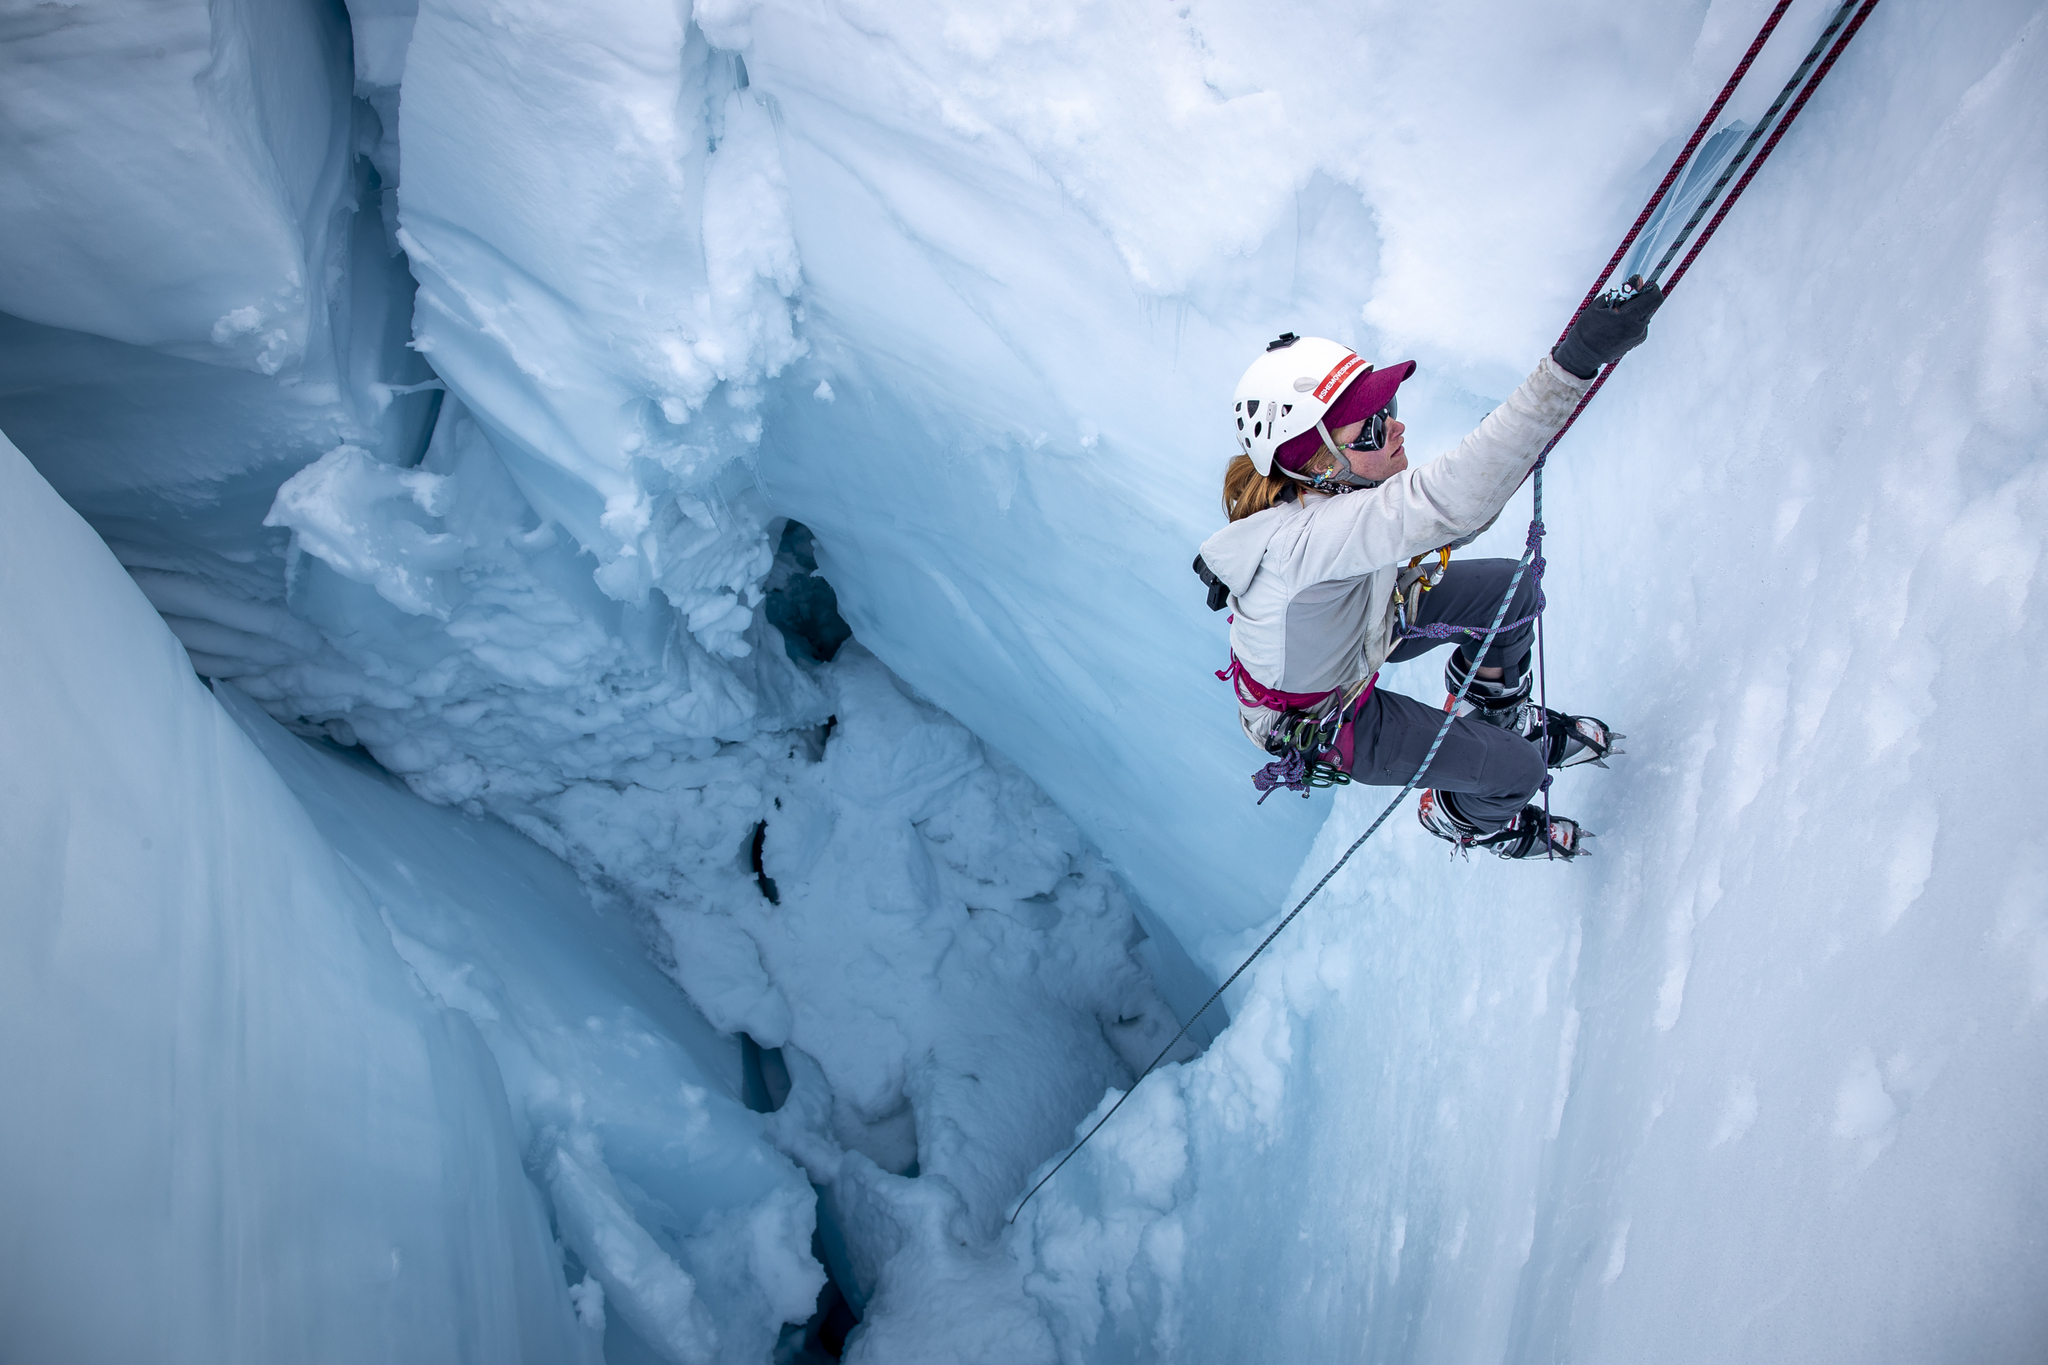 Tori Kennedy climbs out of a crevasse in Alaska. Credit: Andrew Opila